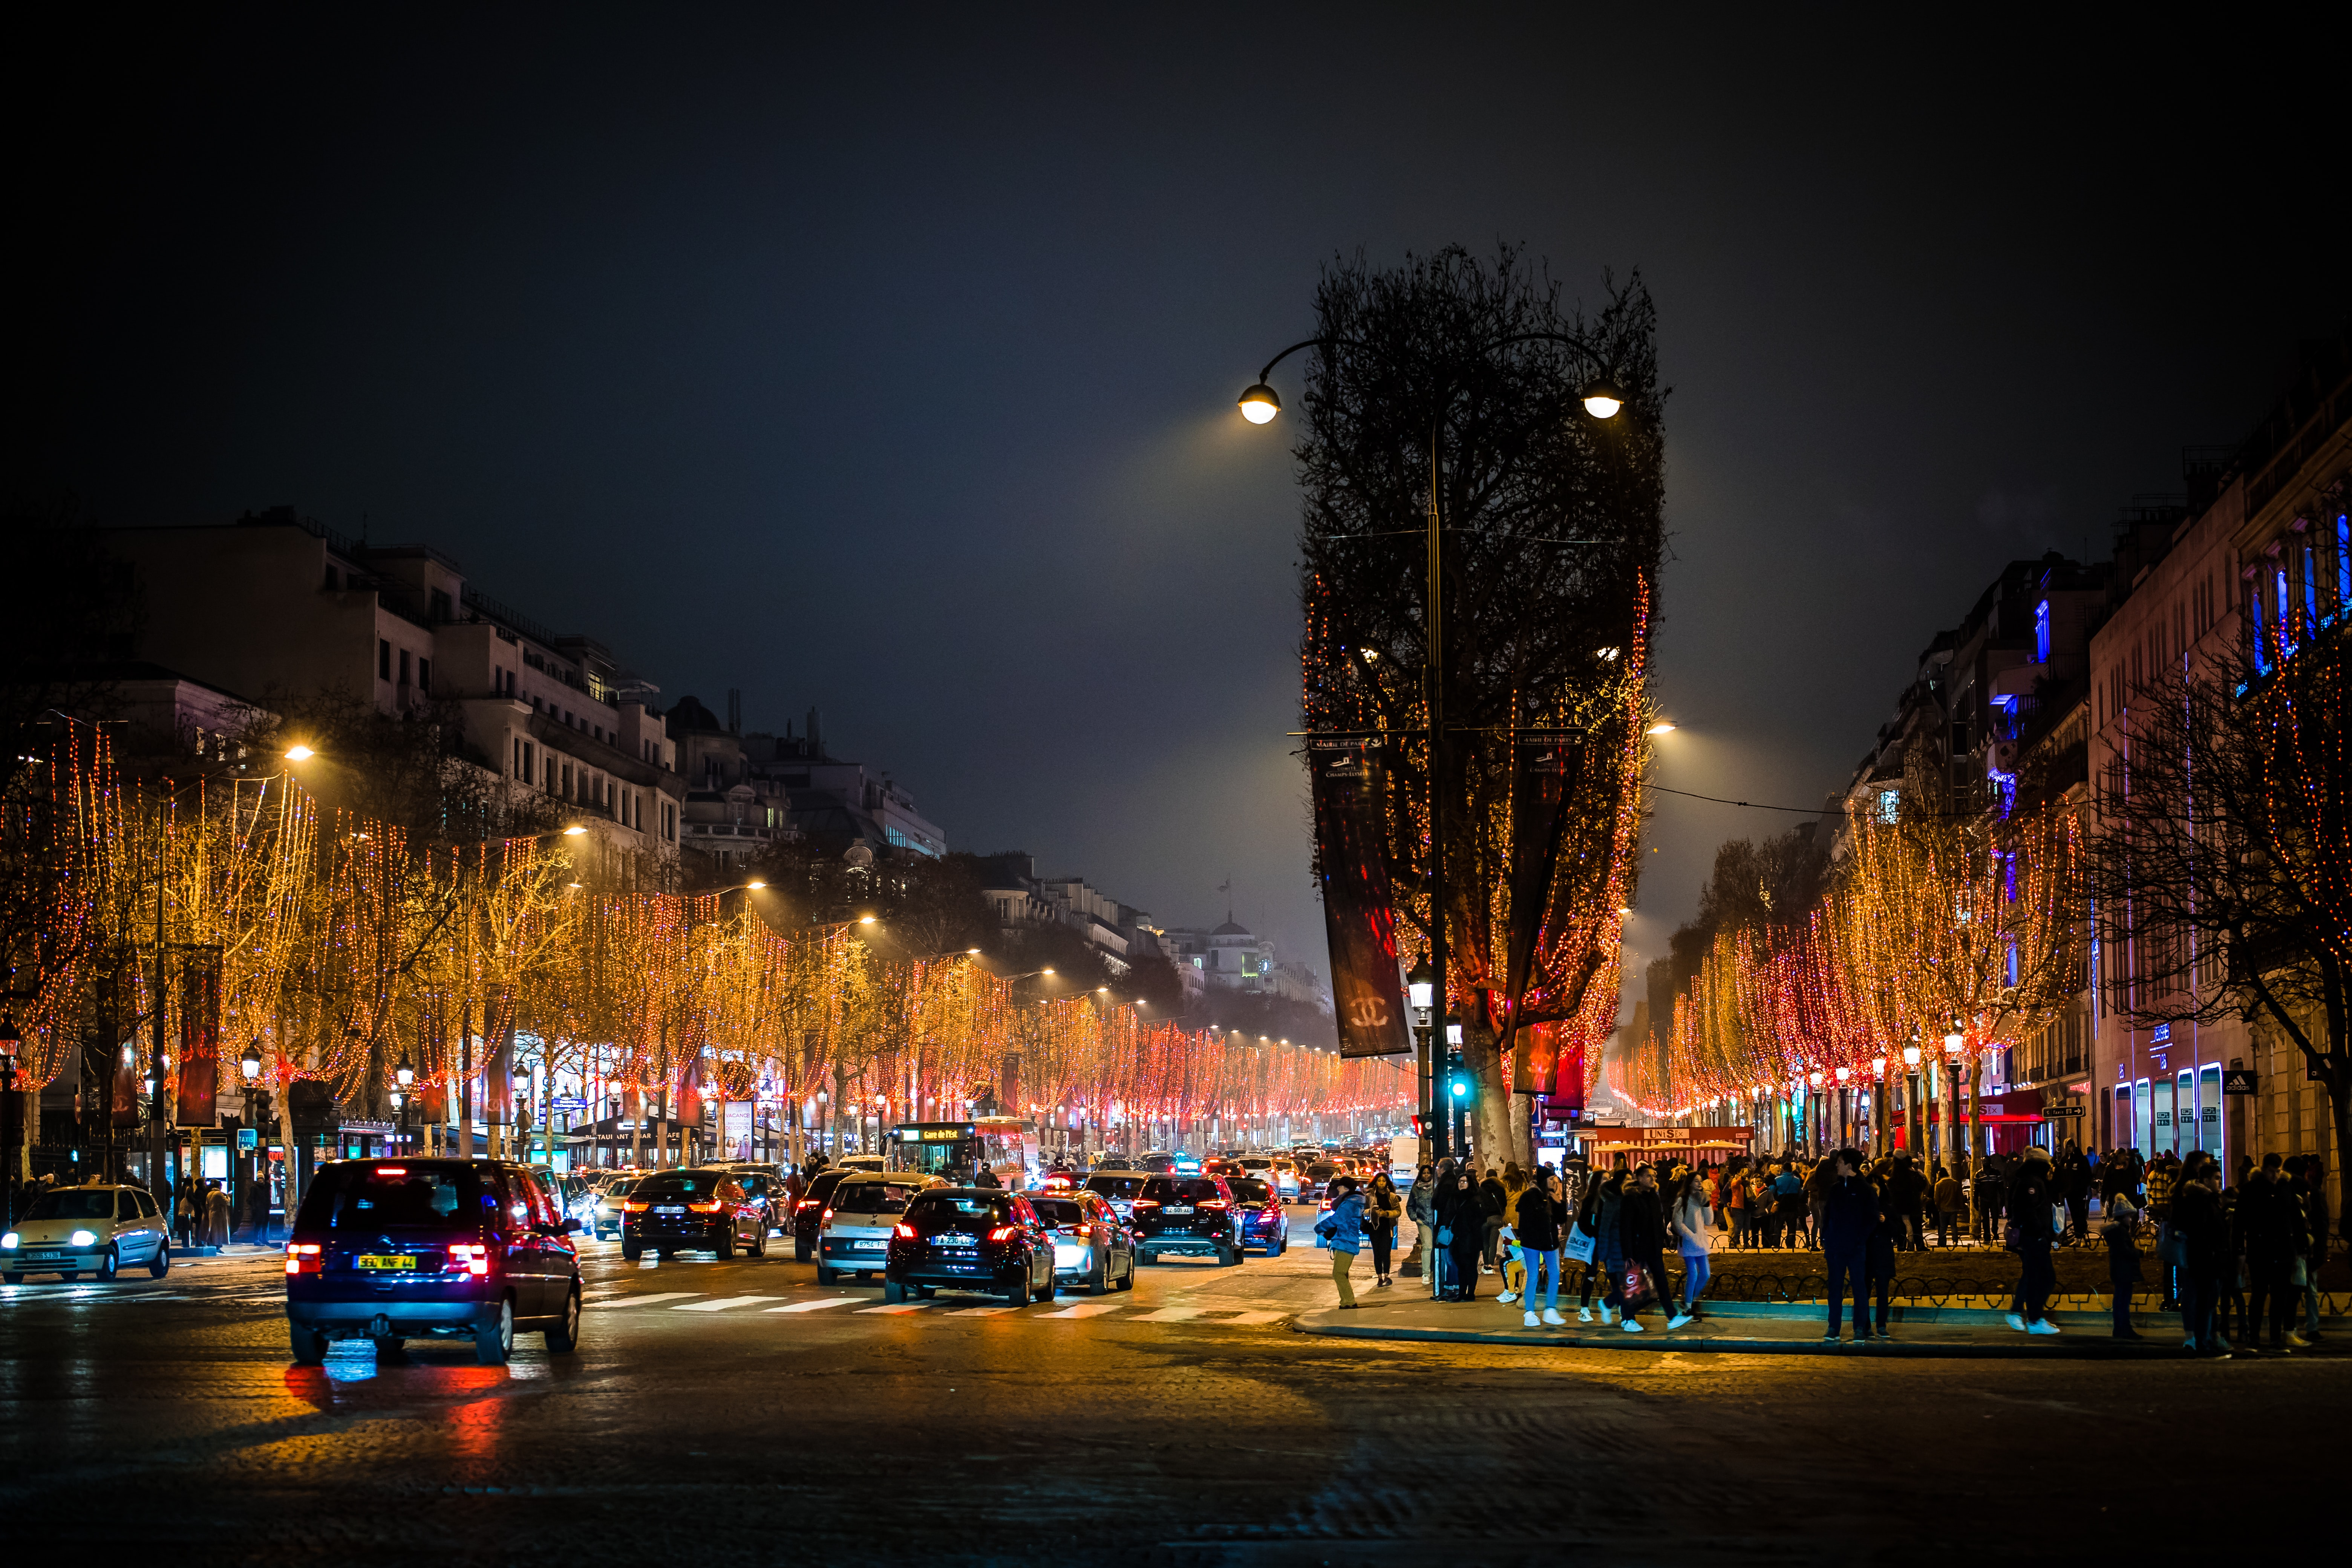 Christmas market, Things To Do In France in November